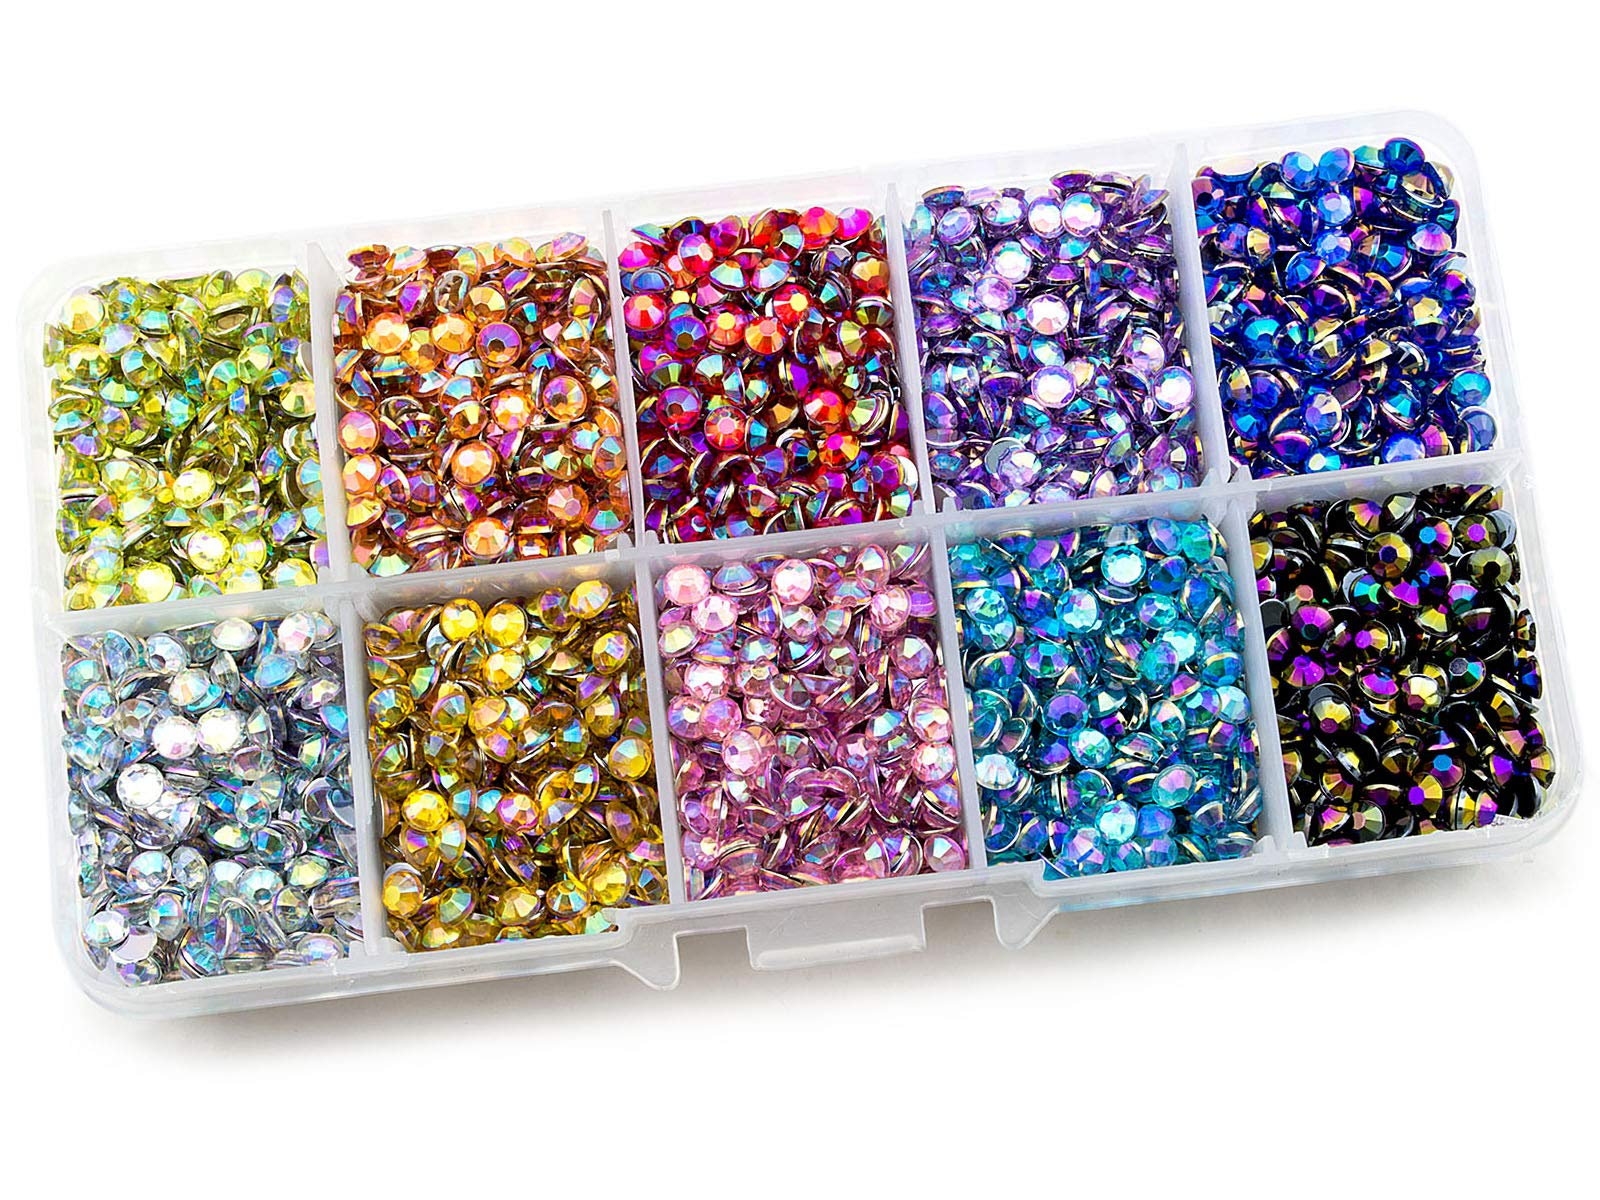 Summer-Ray 4mm Assorted Color AB Rhinestones in Storage Box Large Quantity Set by Summer-Ray.com